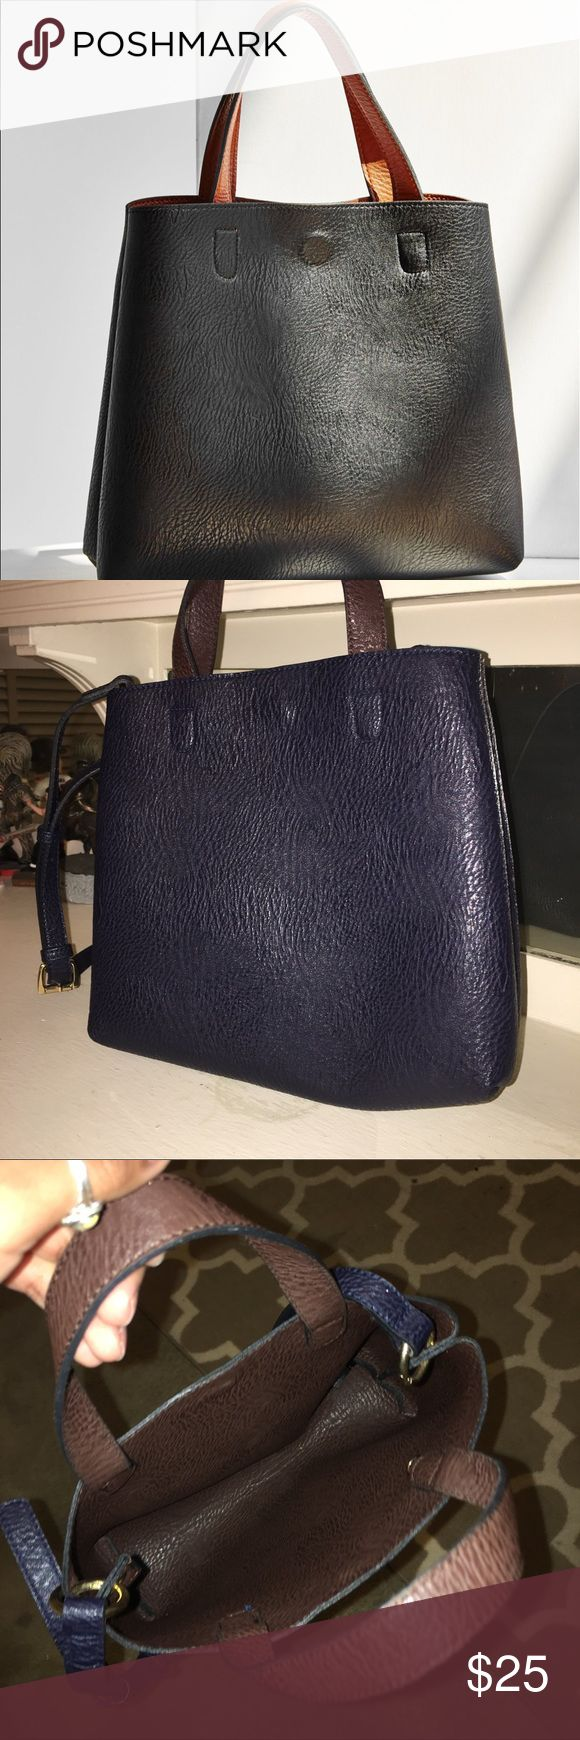 """Mini reversible vegan leather tote bag Worn a few times. Navy blue and dark brown. Adjustable strap. I do not have the clip on pouch. Length 12.5"""", width 3"""", height 9.7"""". There are no holes or tears. Great condition Urban Outfitters Bags Shoulder Bags"""